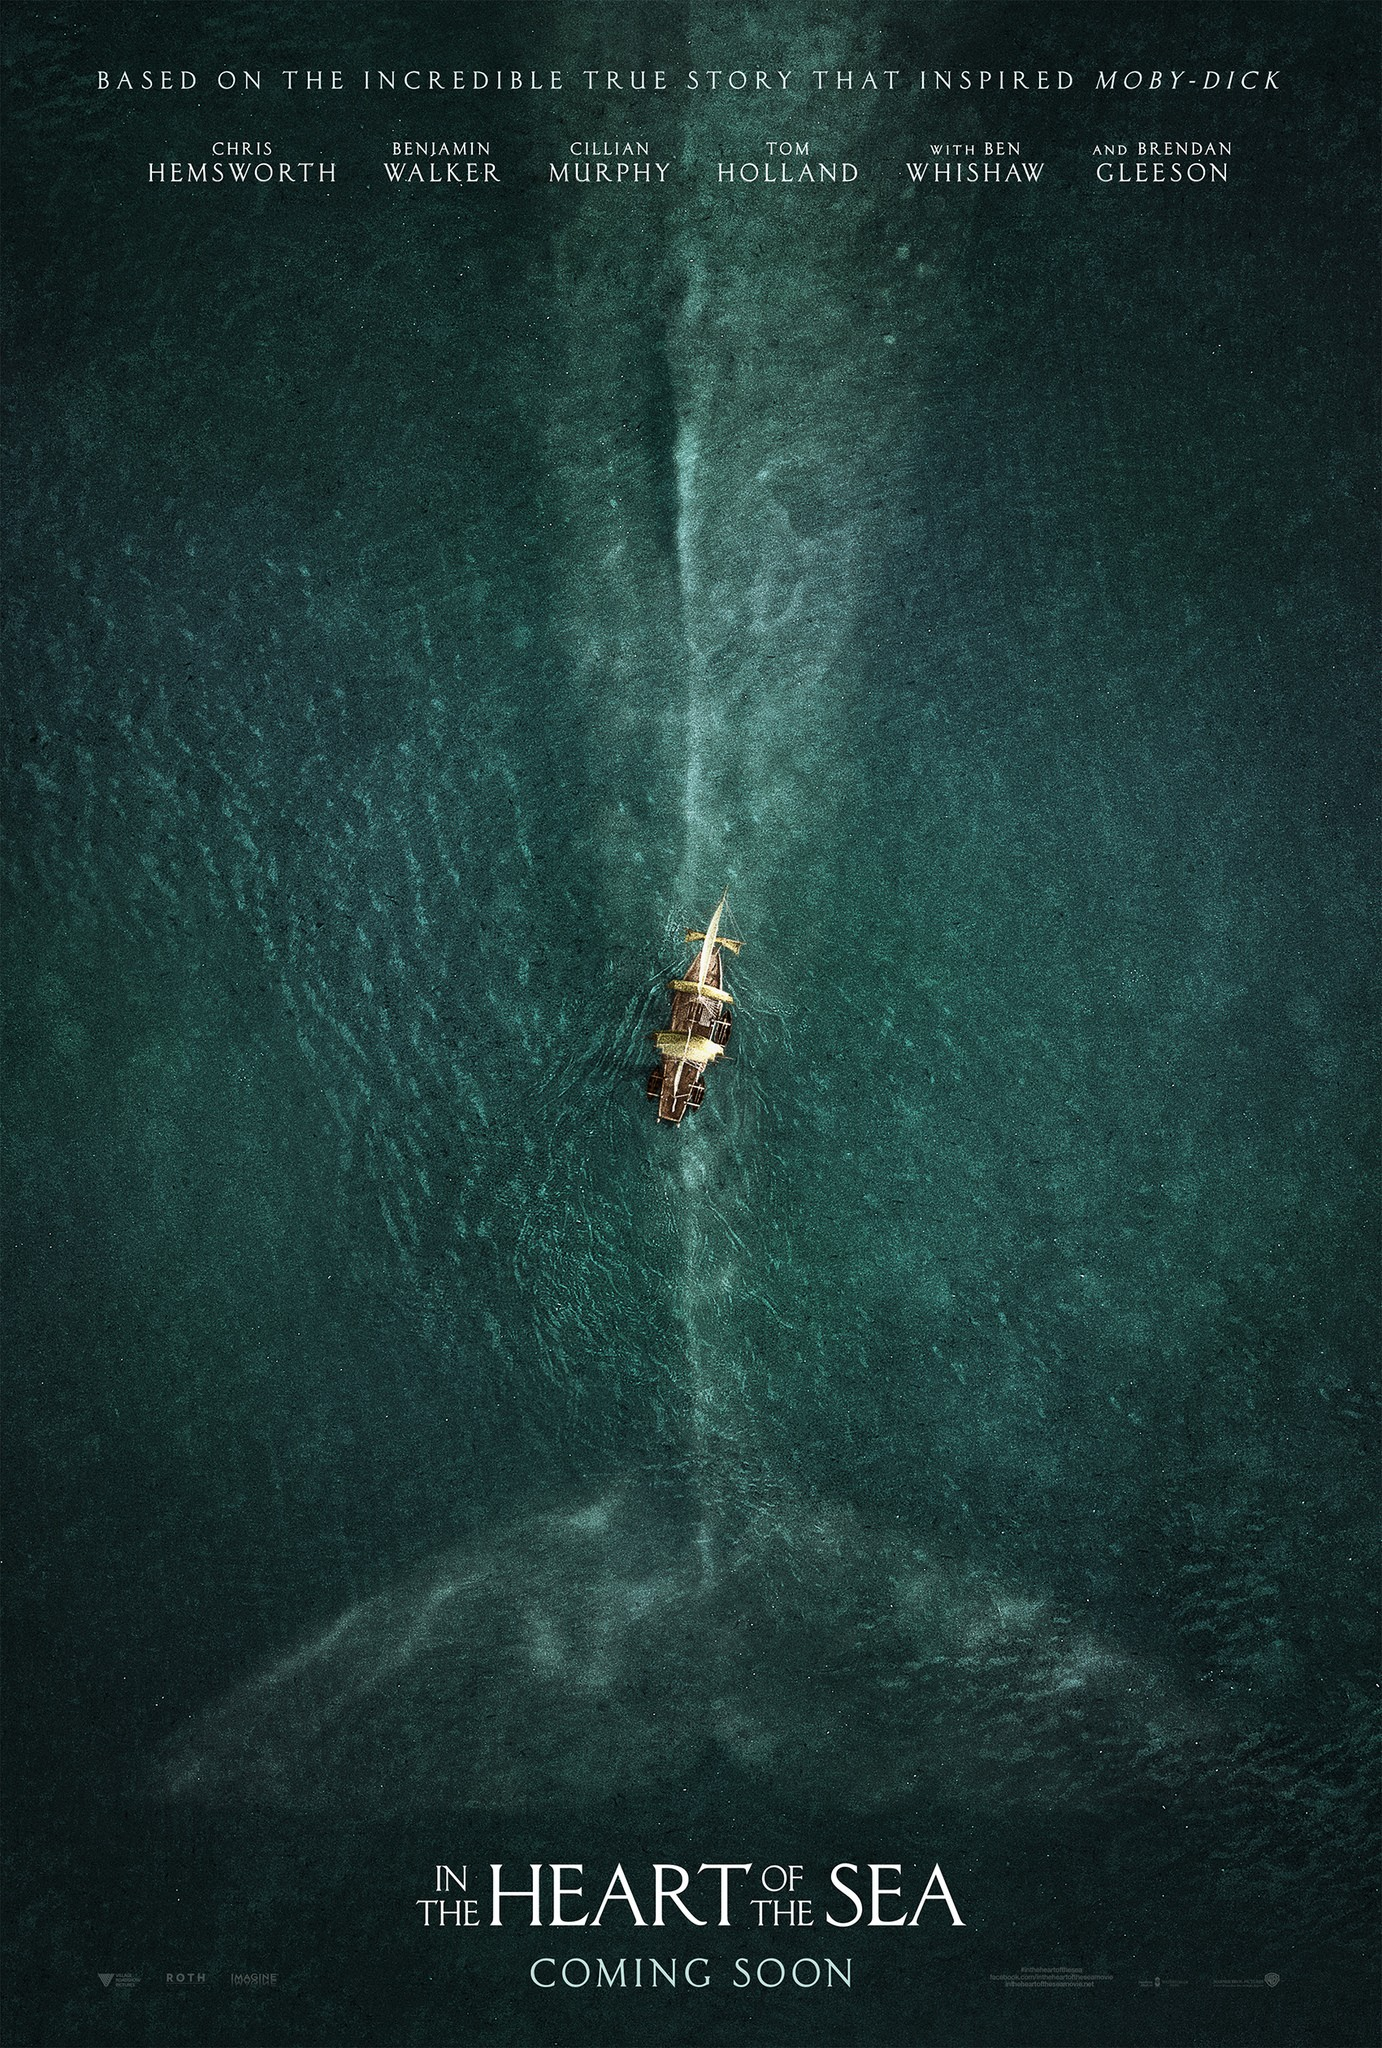 In the Heart of the Sea-Official Poster XXLG-21OUTUBRO2014